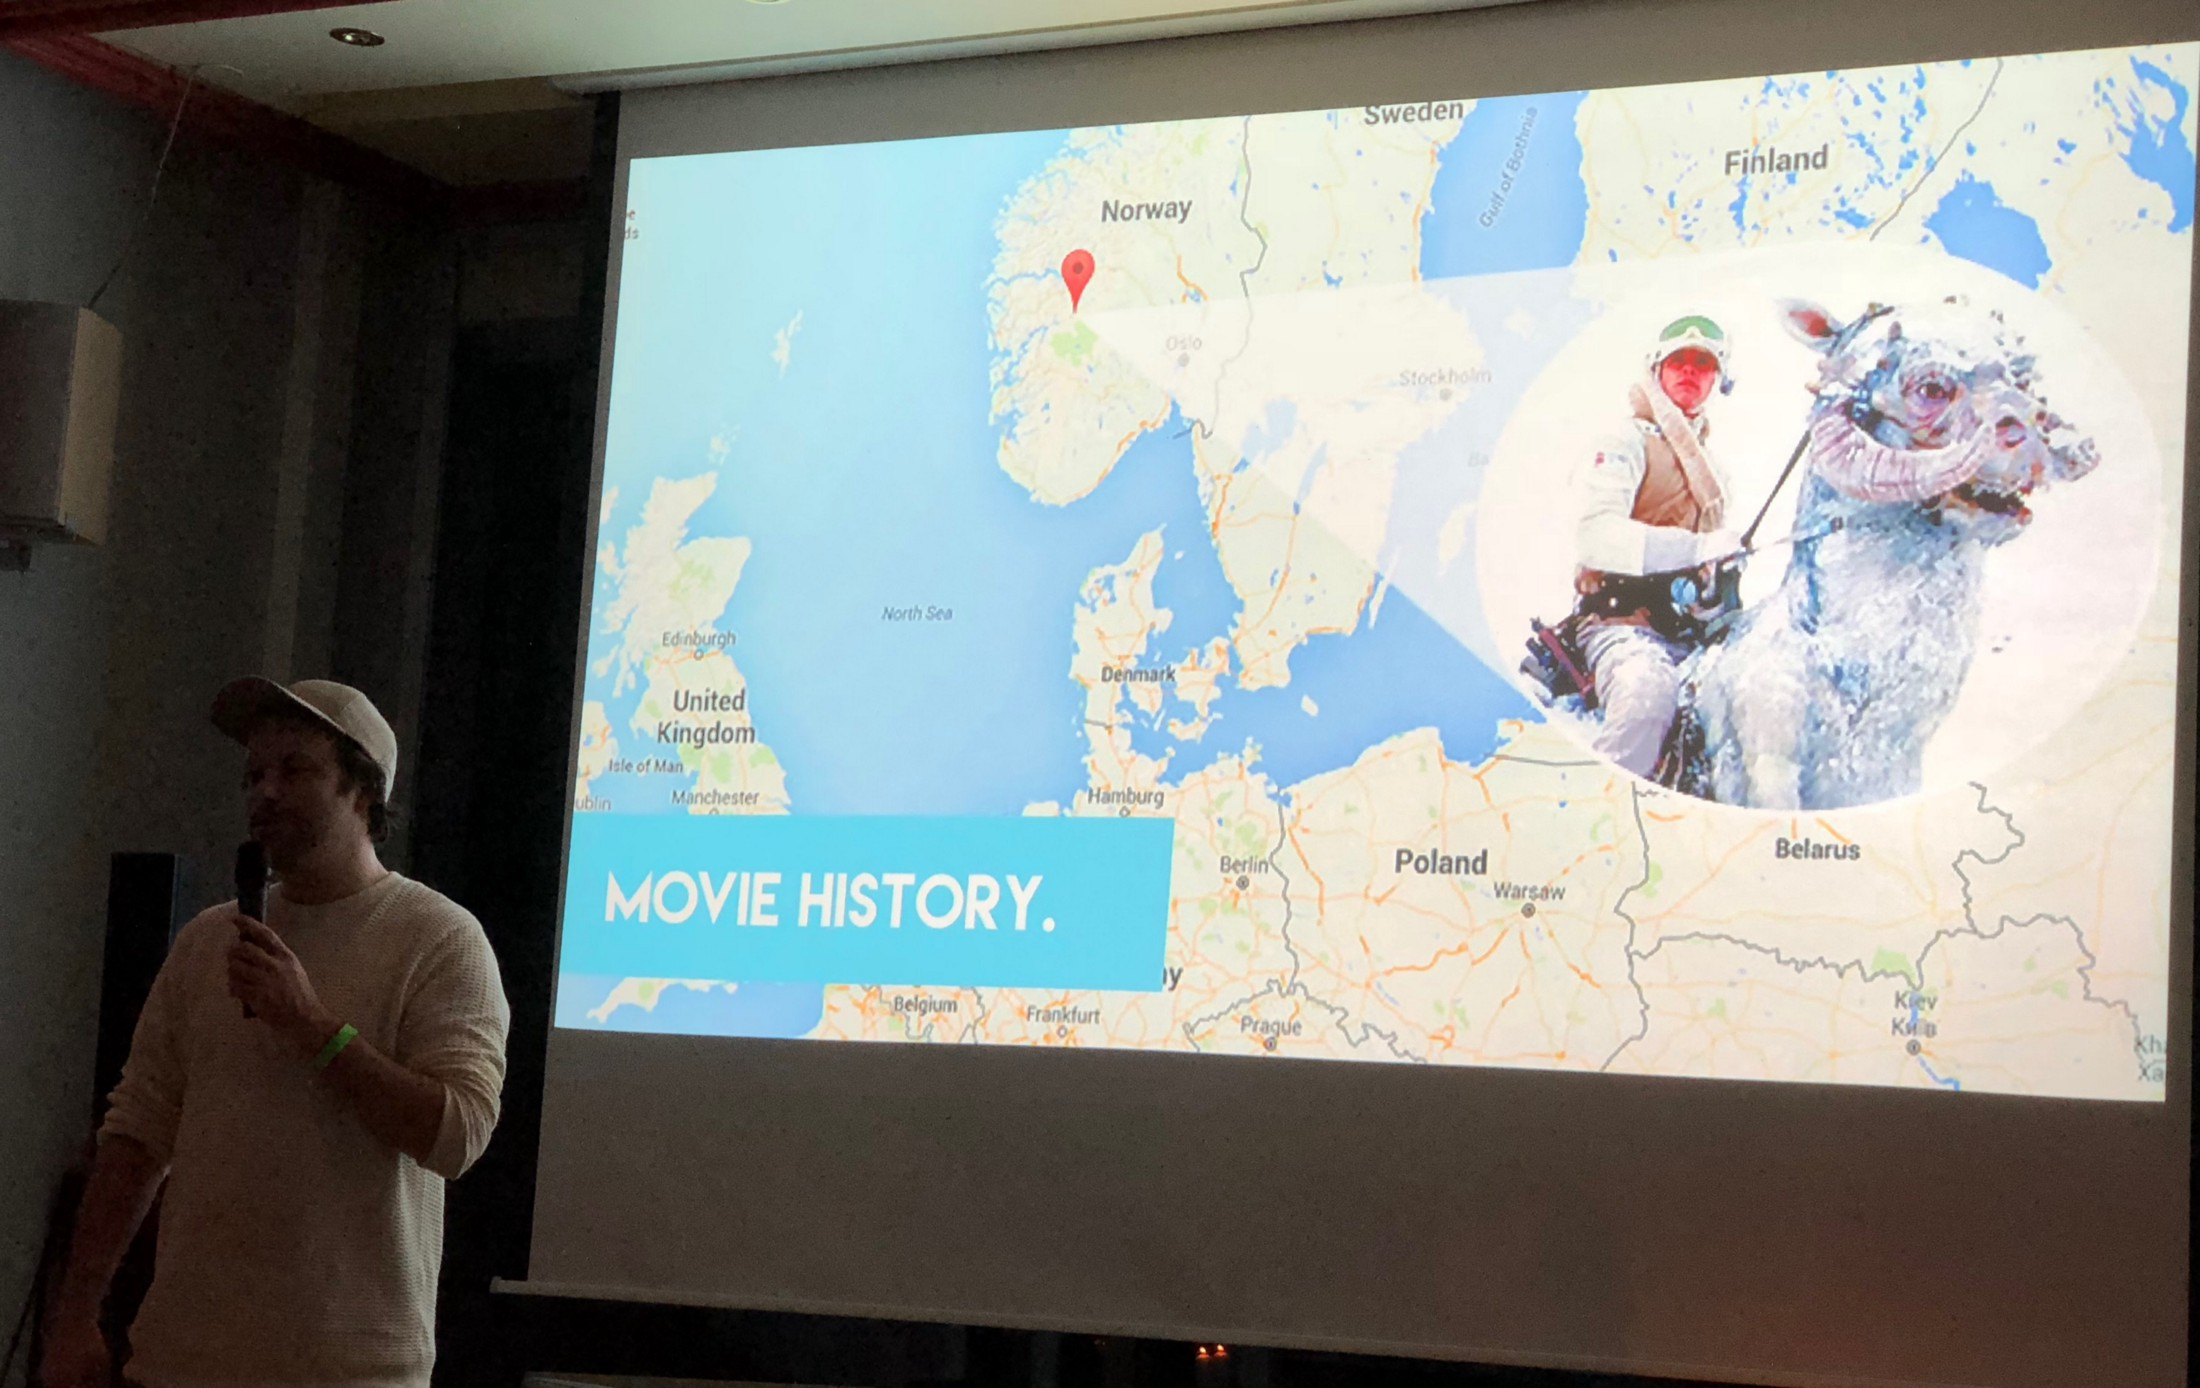 Andreas Frølich opens the event with some movie history.